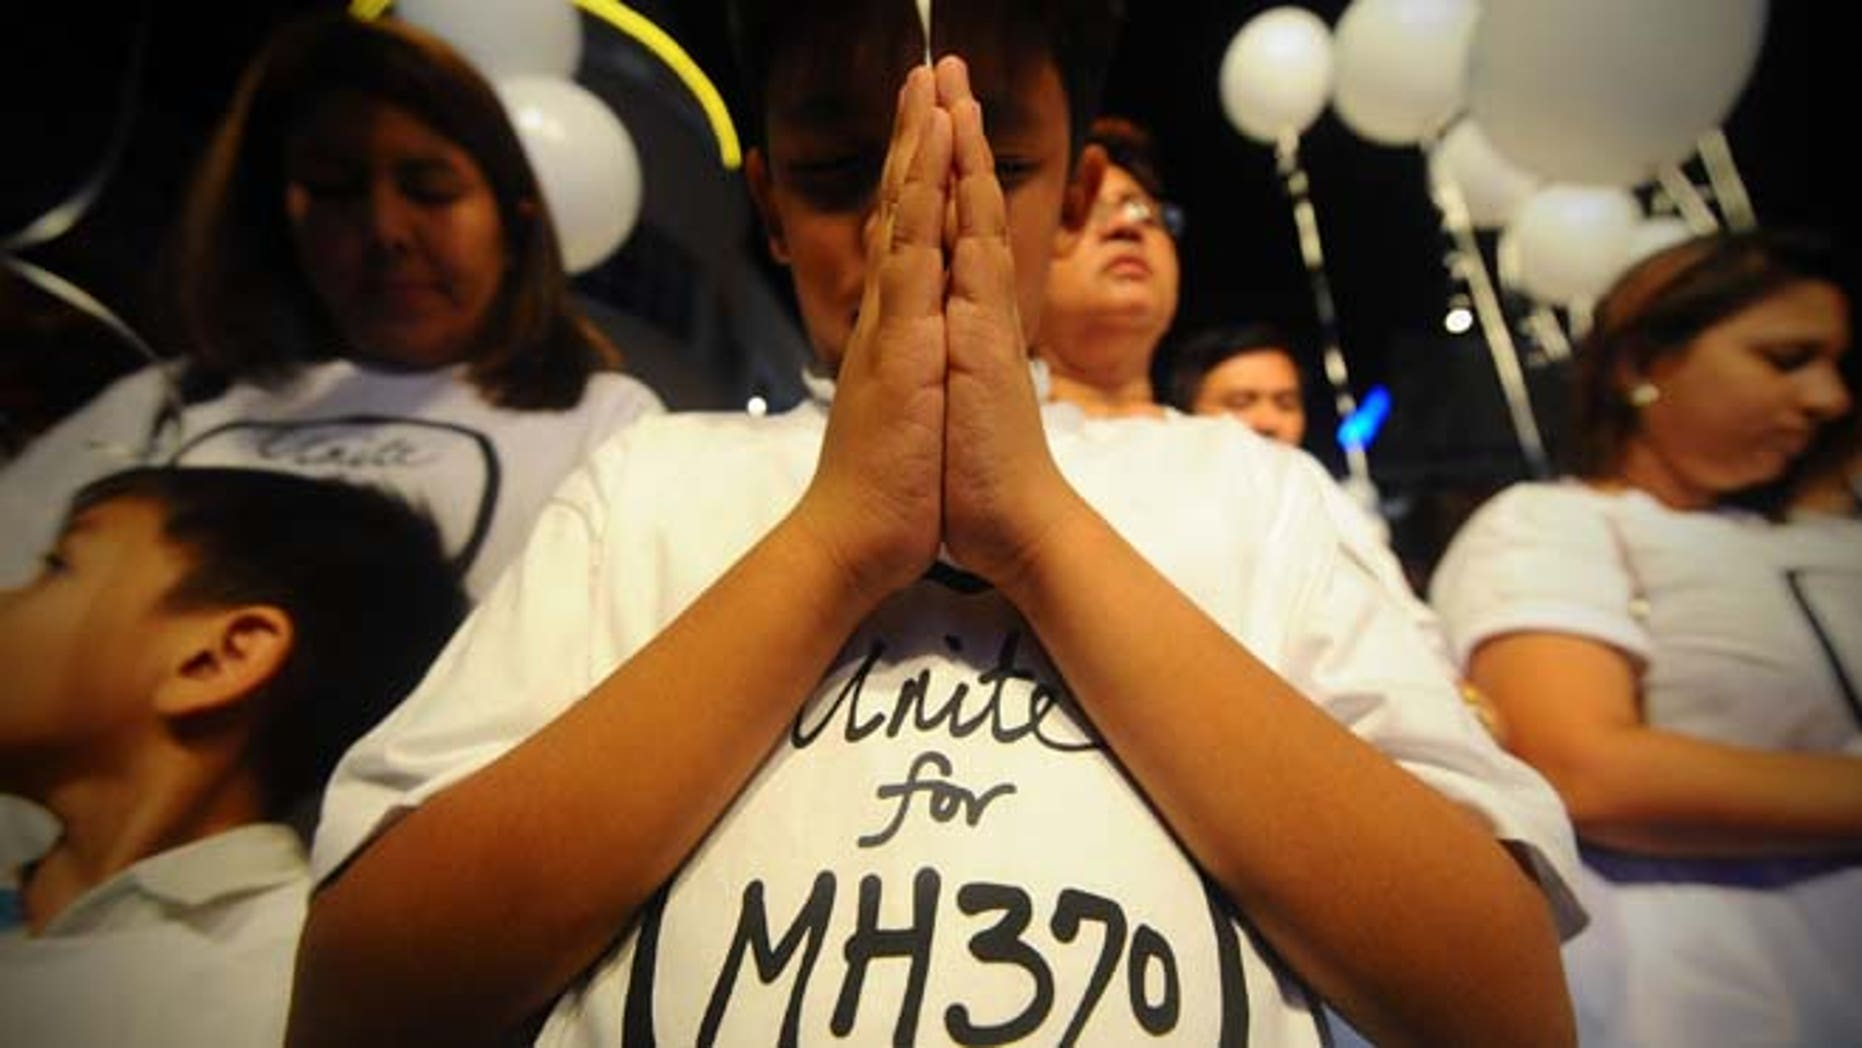 March 18, 2014: A young Malaysian boy prays at an event for the missing Malaysia Airline Flight 370 at a shopping mall in Petaling Jaya on the outskirts of Kuala Lumpur, Malaysia.